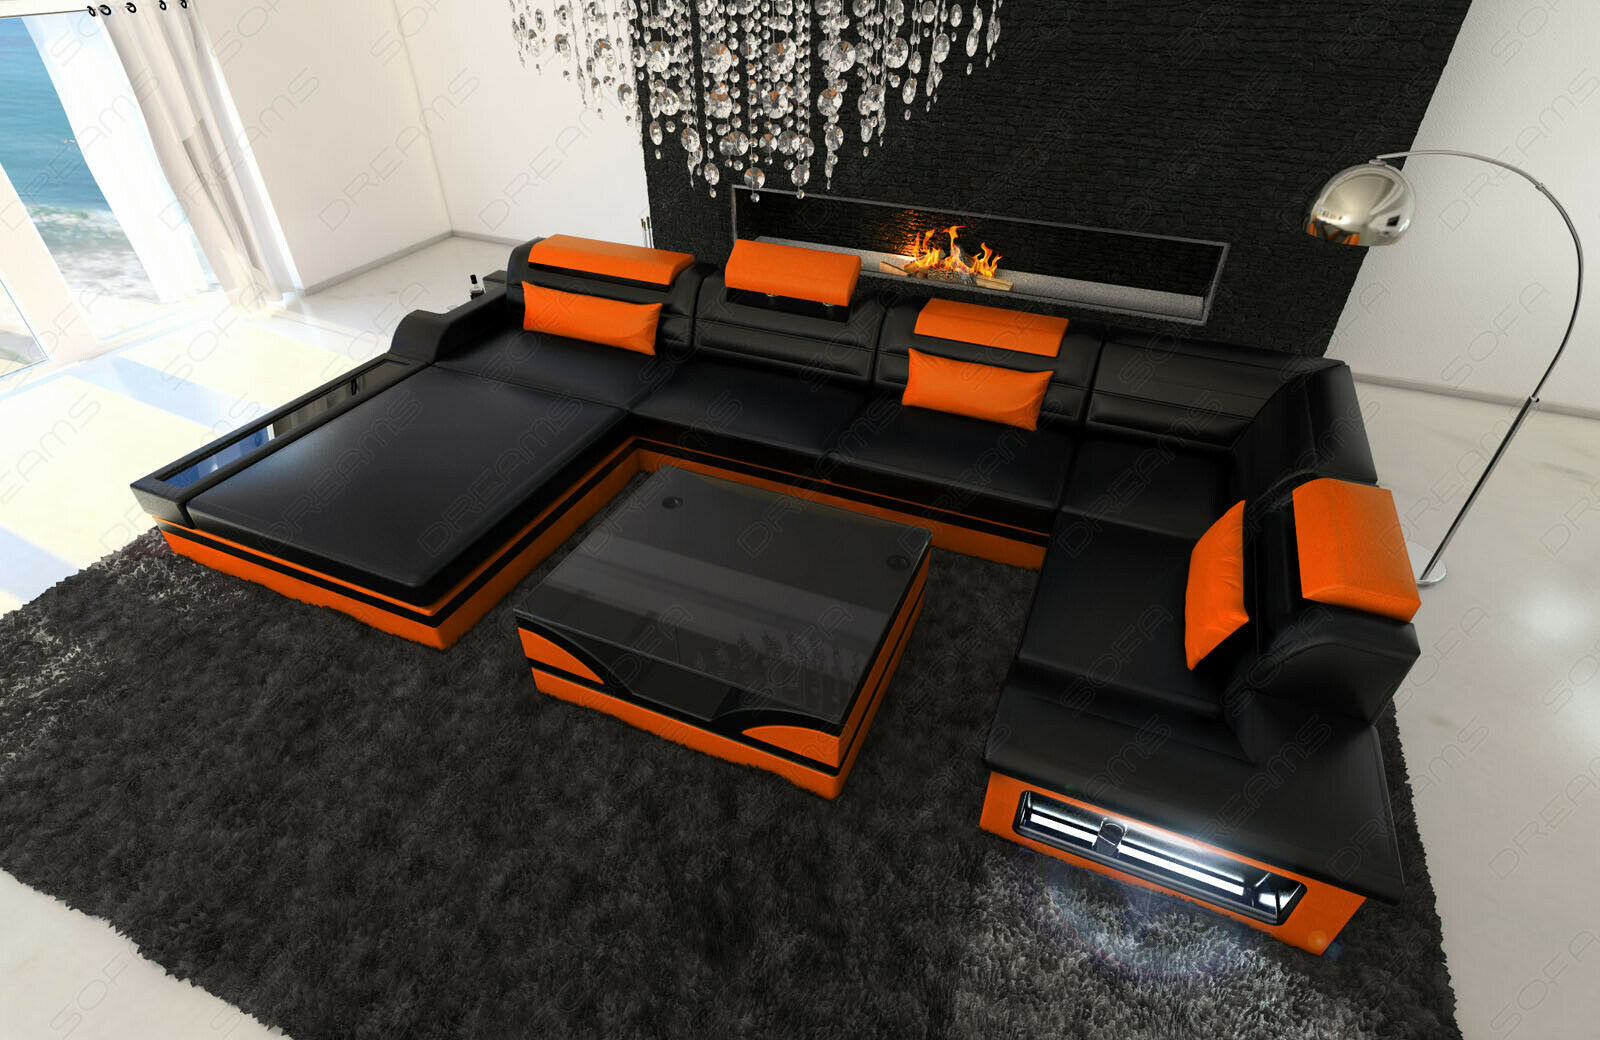 xxl wohnlandschaft mezzo led designer couch garnitur ledersofa eur picclick de. Black Bedroom Furniture Sets. Home Design Ideas